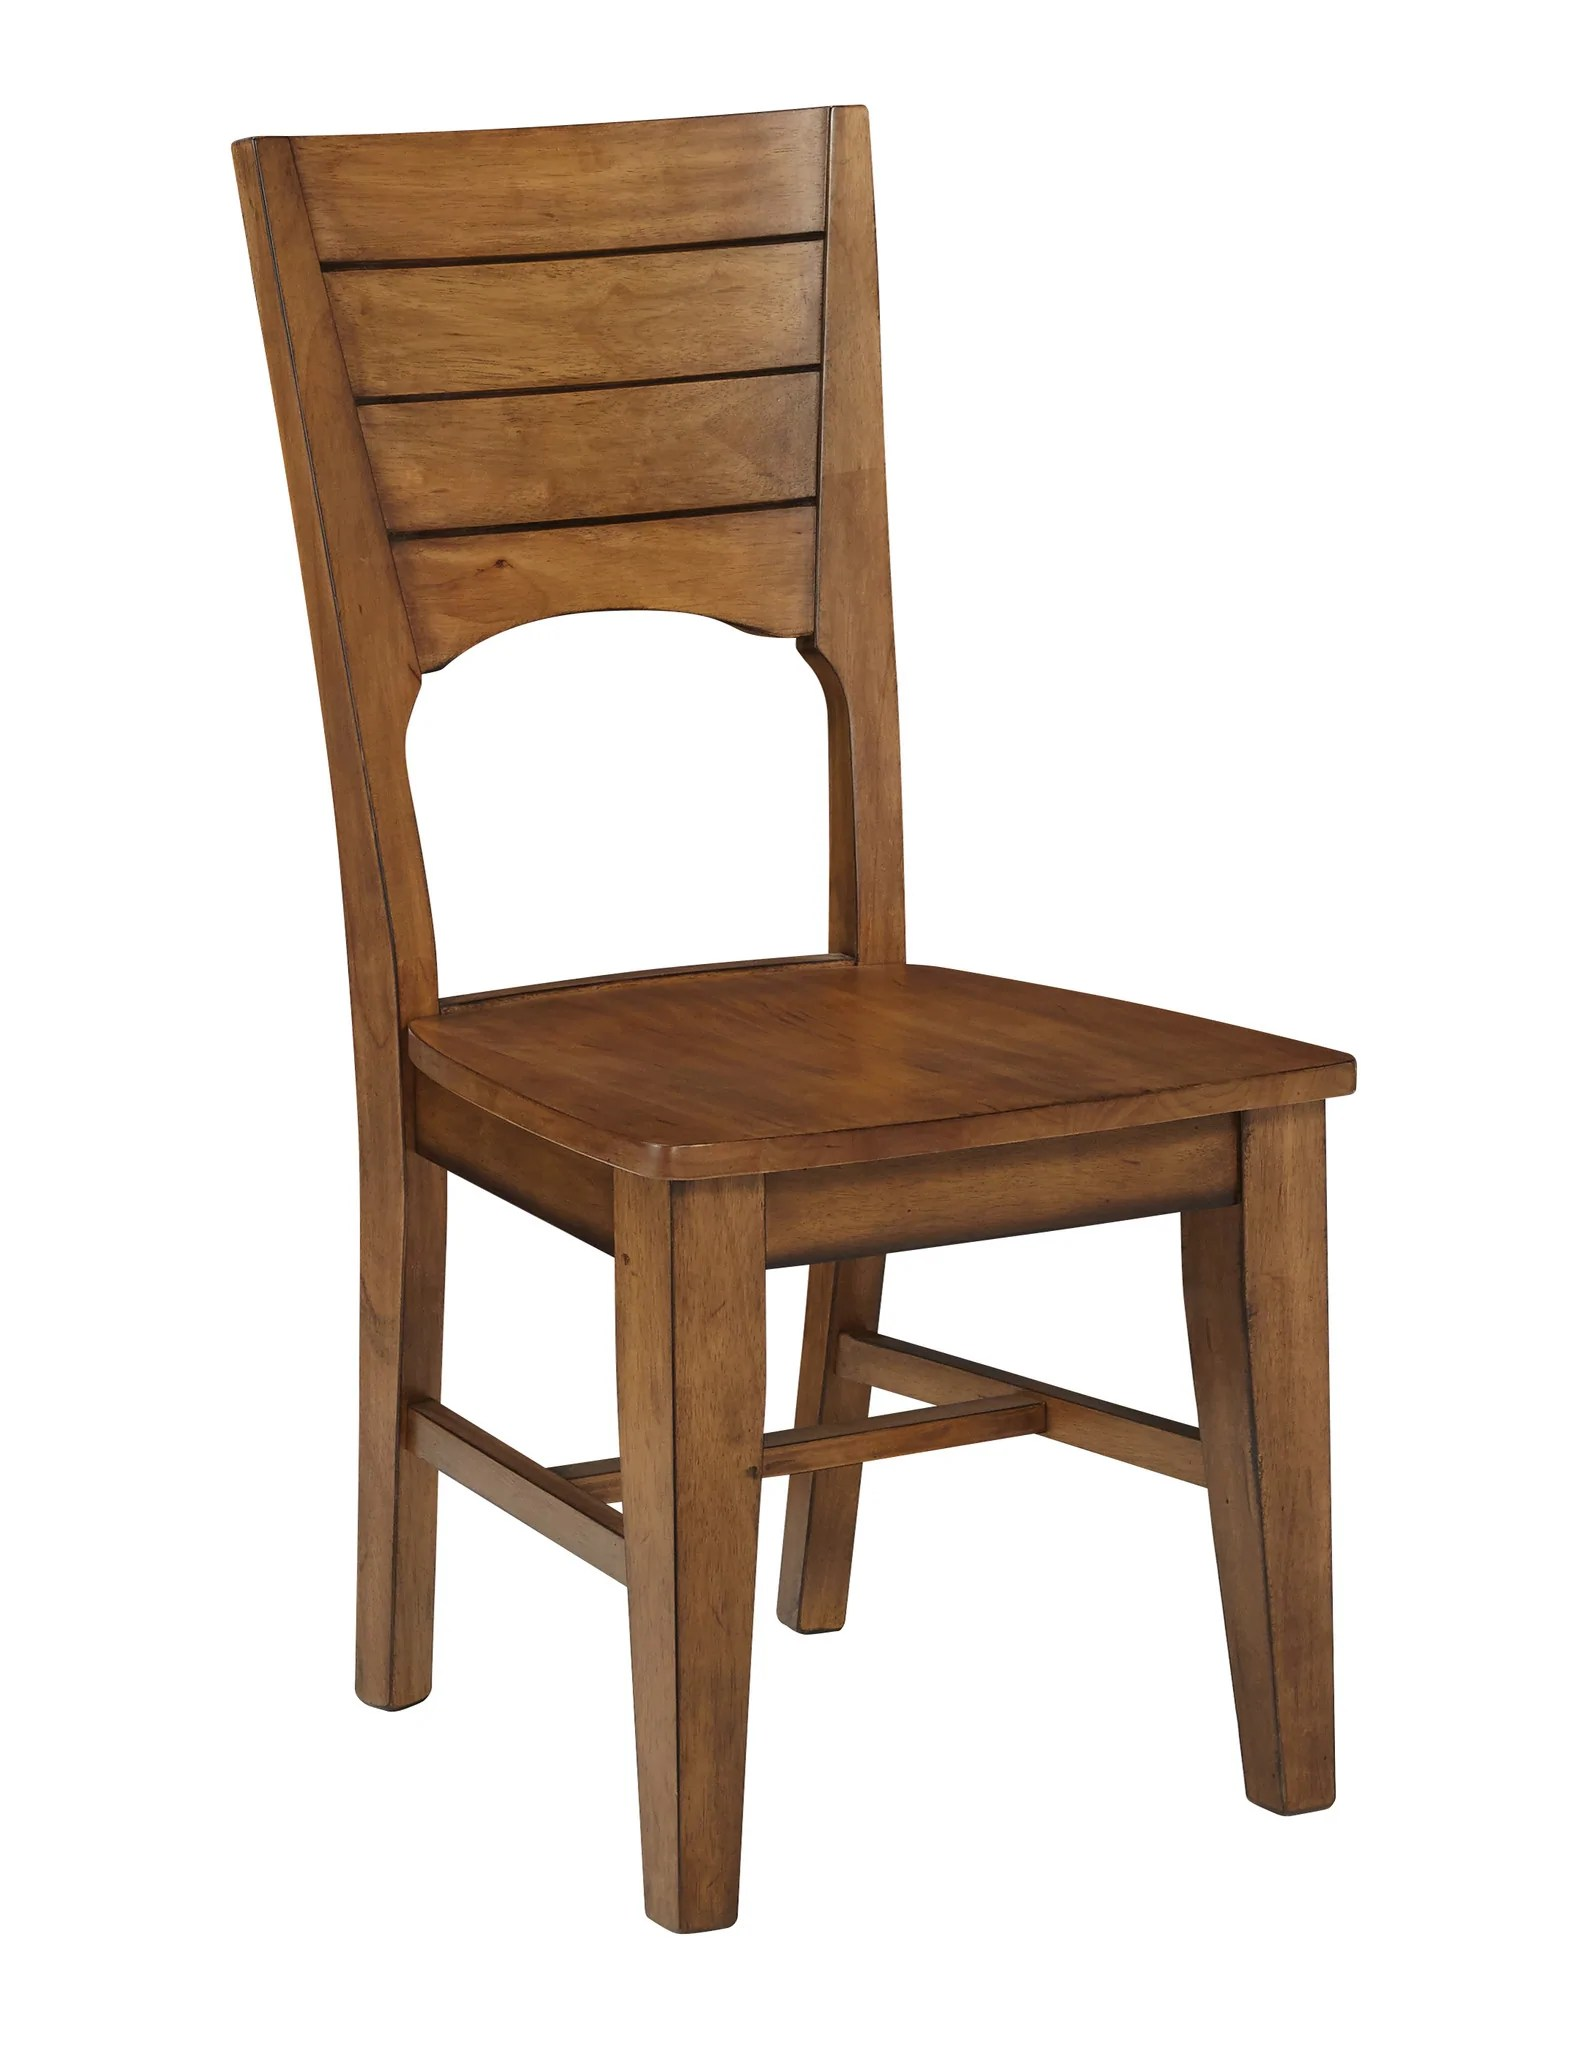 Unfinished Dining Chairs Canyon Unfinished Hardwood Dining Chairs 2 Pack Free